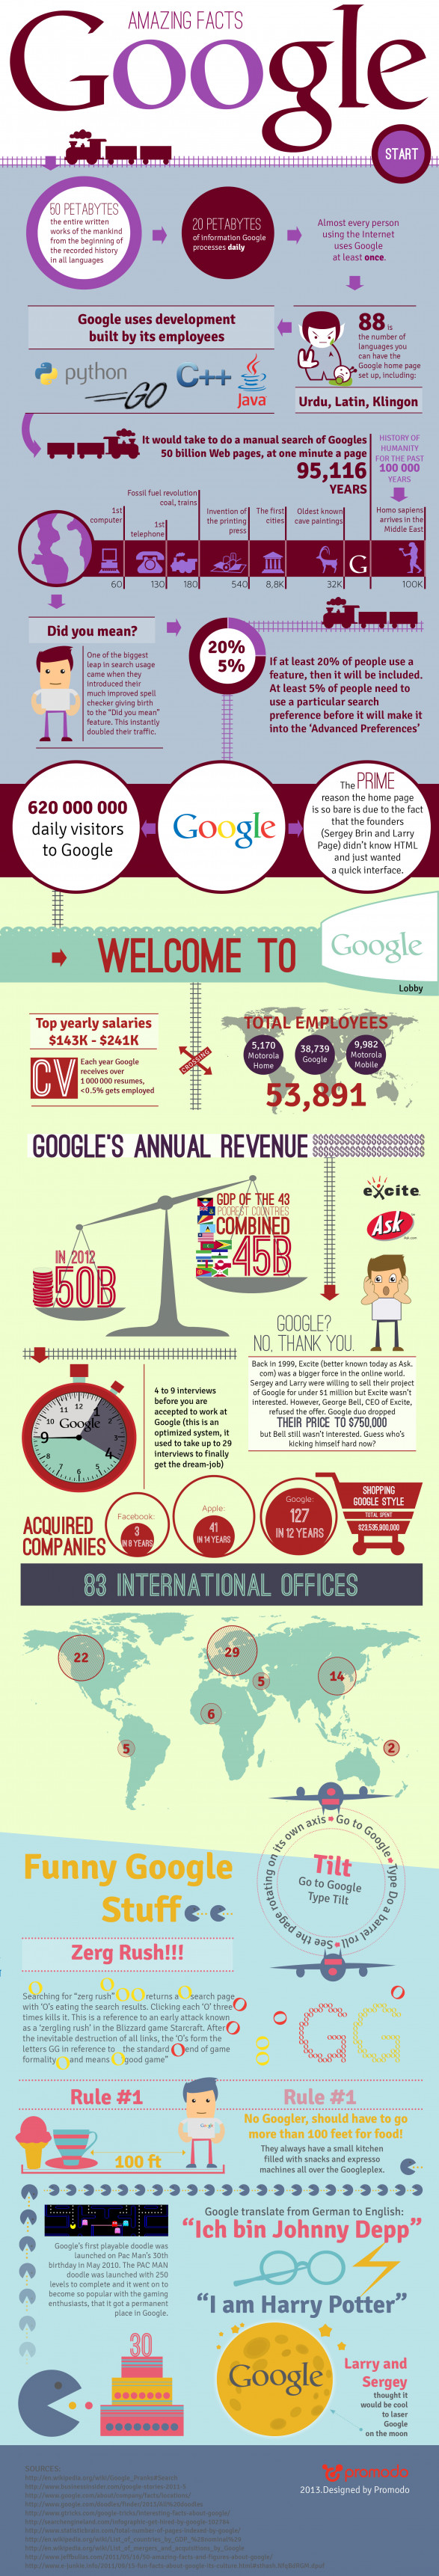 Amazing Google Facts You Most Probably Didn